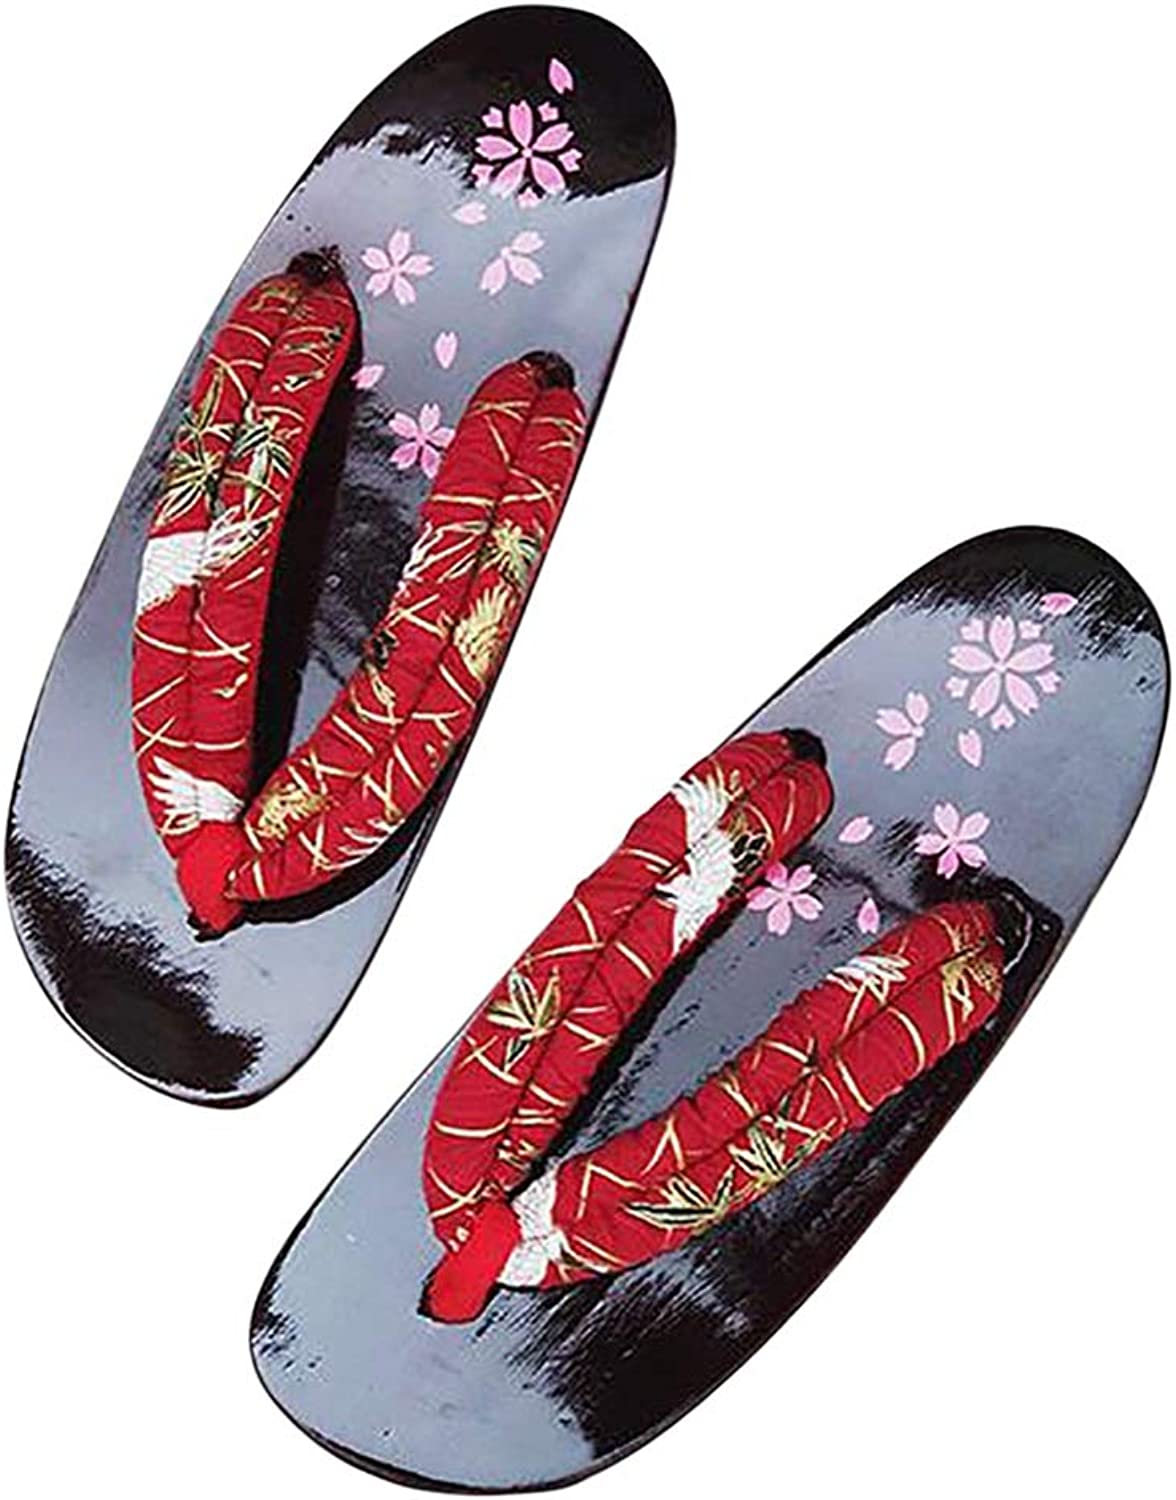 HUYP Fashion Female Summer Non-Slip Girl Sandals and Slippers Flower Flip-flops Thick Wooden Slippers (Size   35)